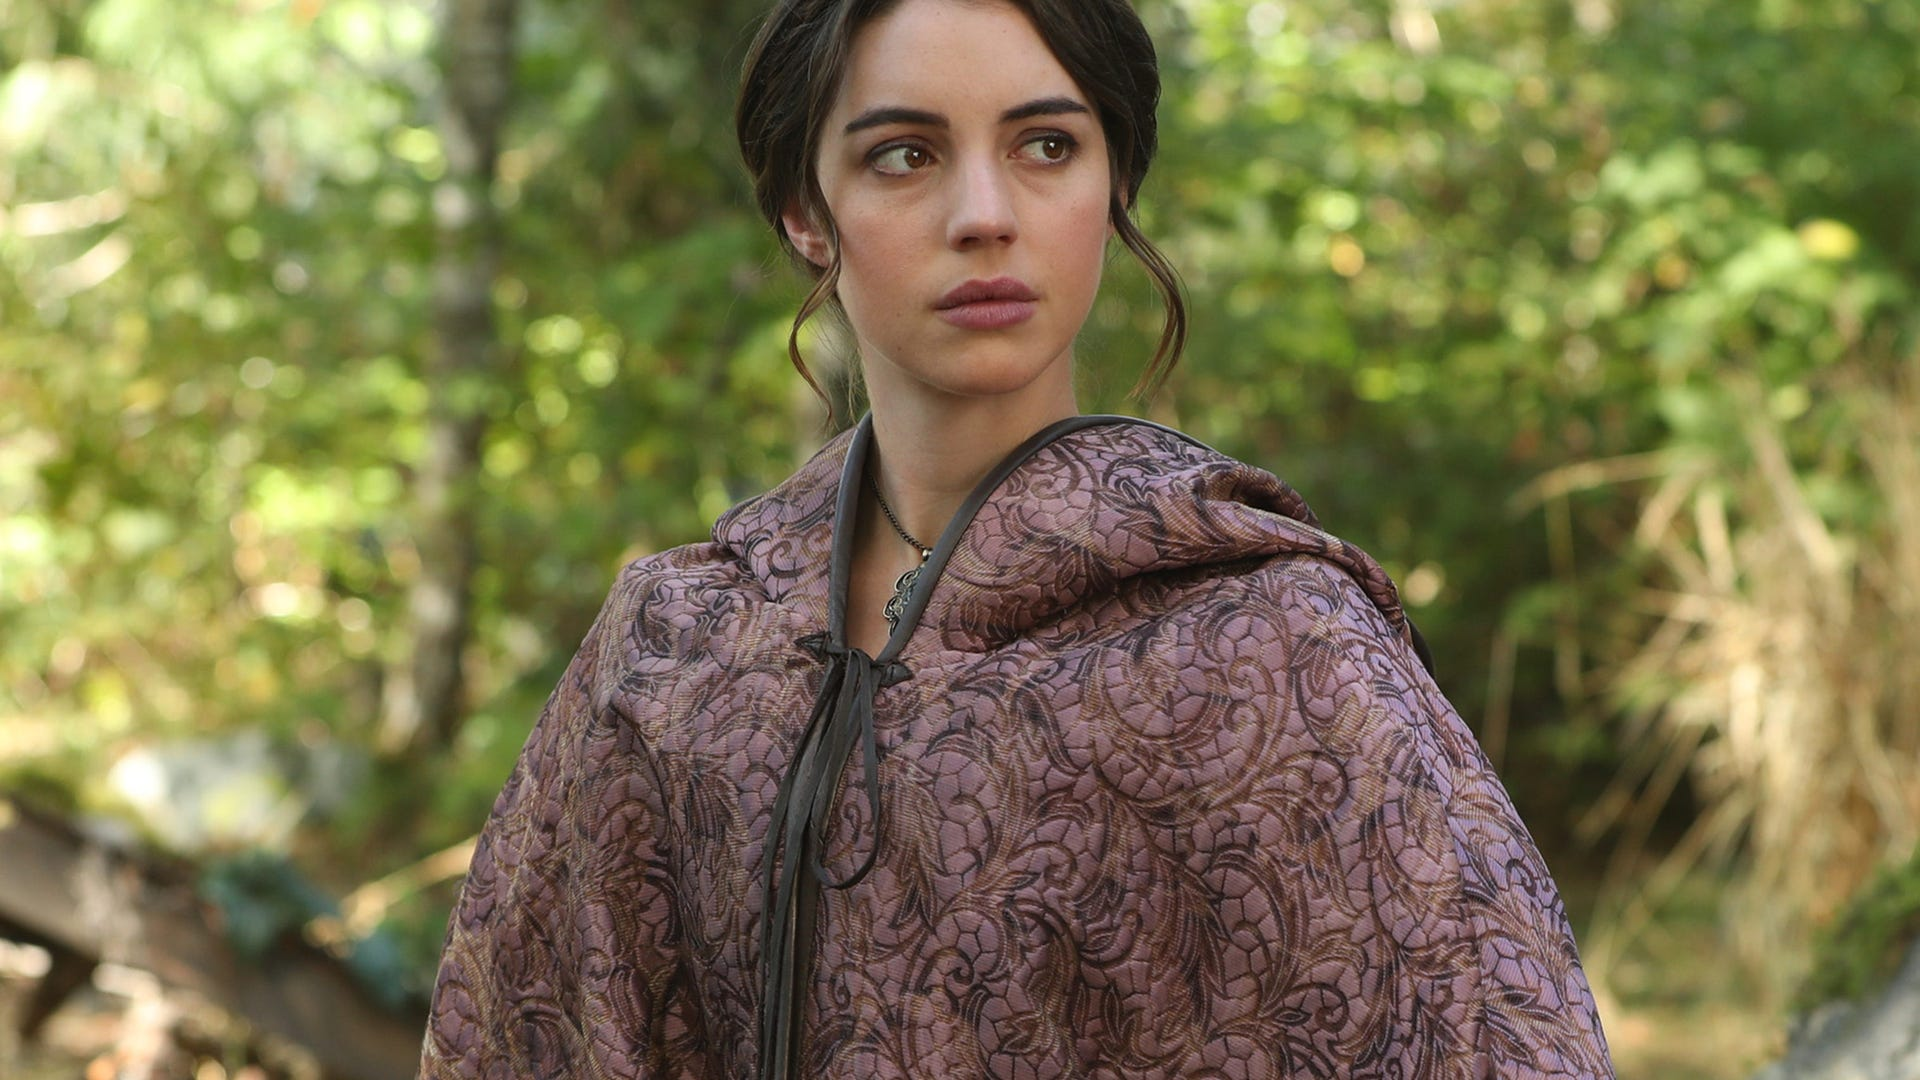 Adelaide Kane, Once Upon a Time